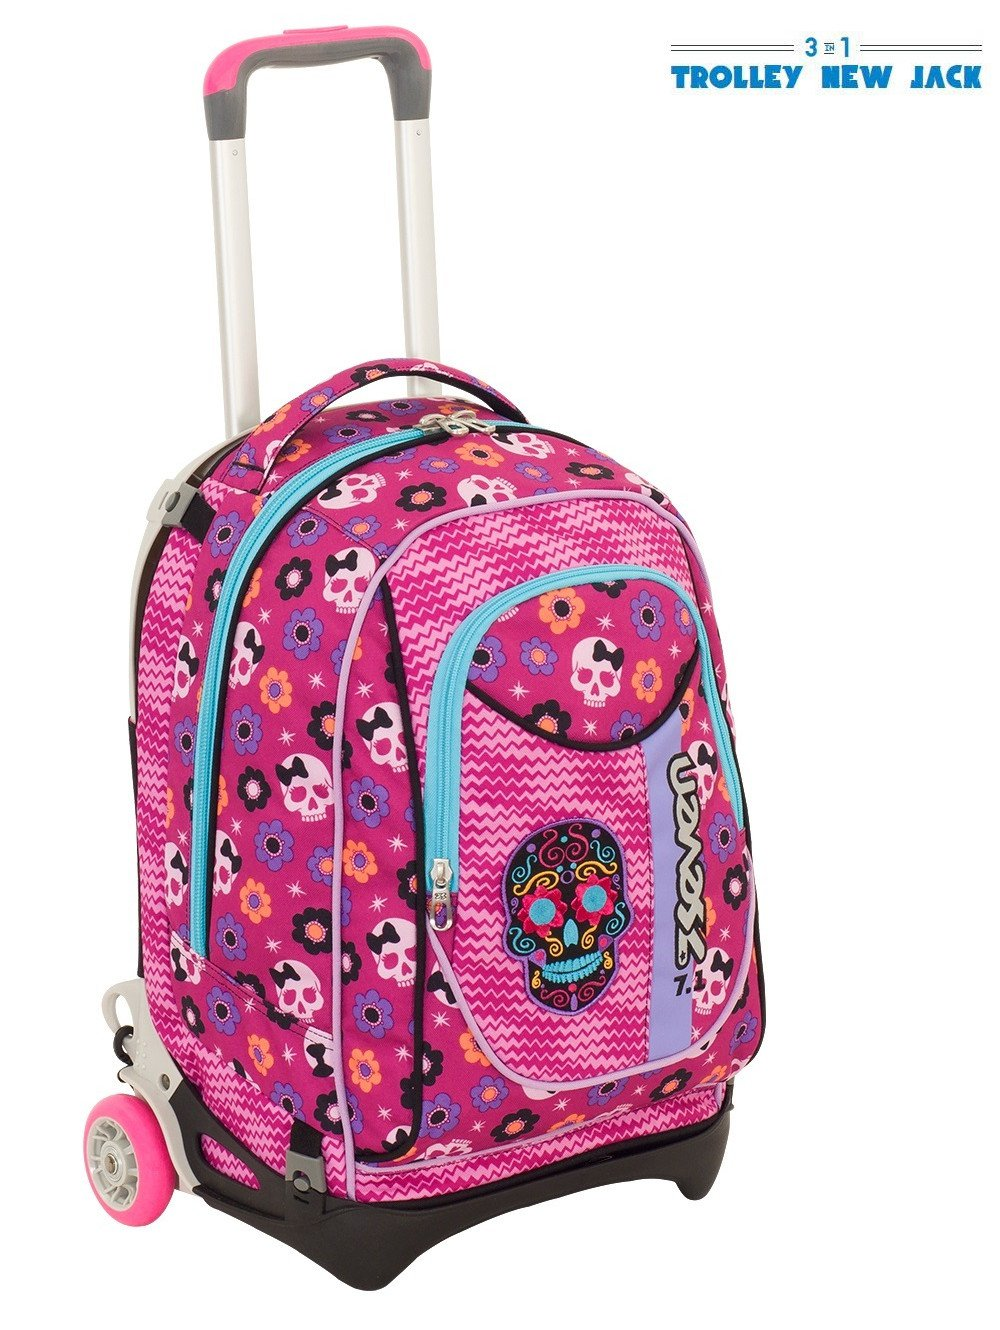 Seven Trolley New Jack - MEXI GIRL -